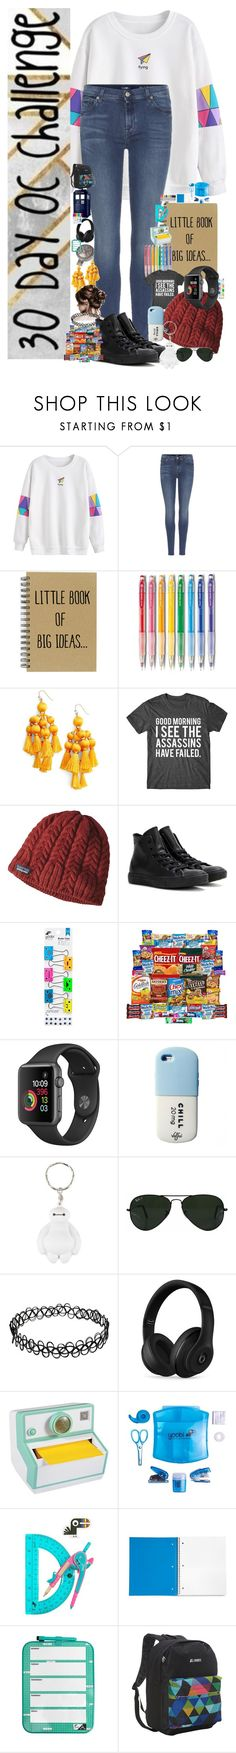 """30 Day OC challenge: Day three"" by wibbly-wobbly-timey-wimey-dork on Polyvore featuring Marvel, 7 For All Mankind, Kate Spade, Patagonia, Converse, Yoobi, Hot Topic, Ray-Ban, Beats by Dr. Dre and Post-It"